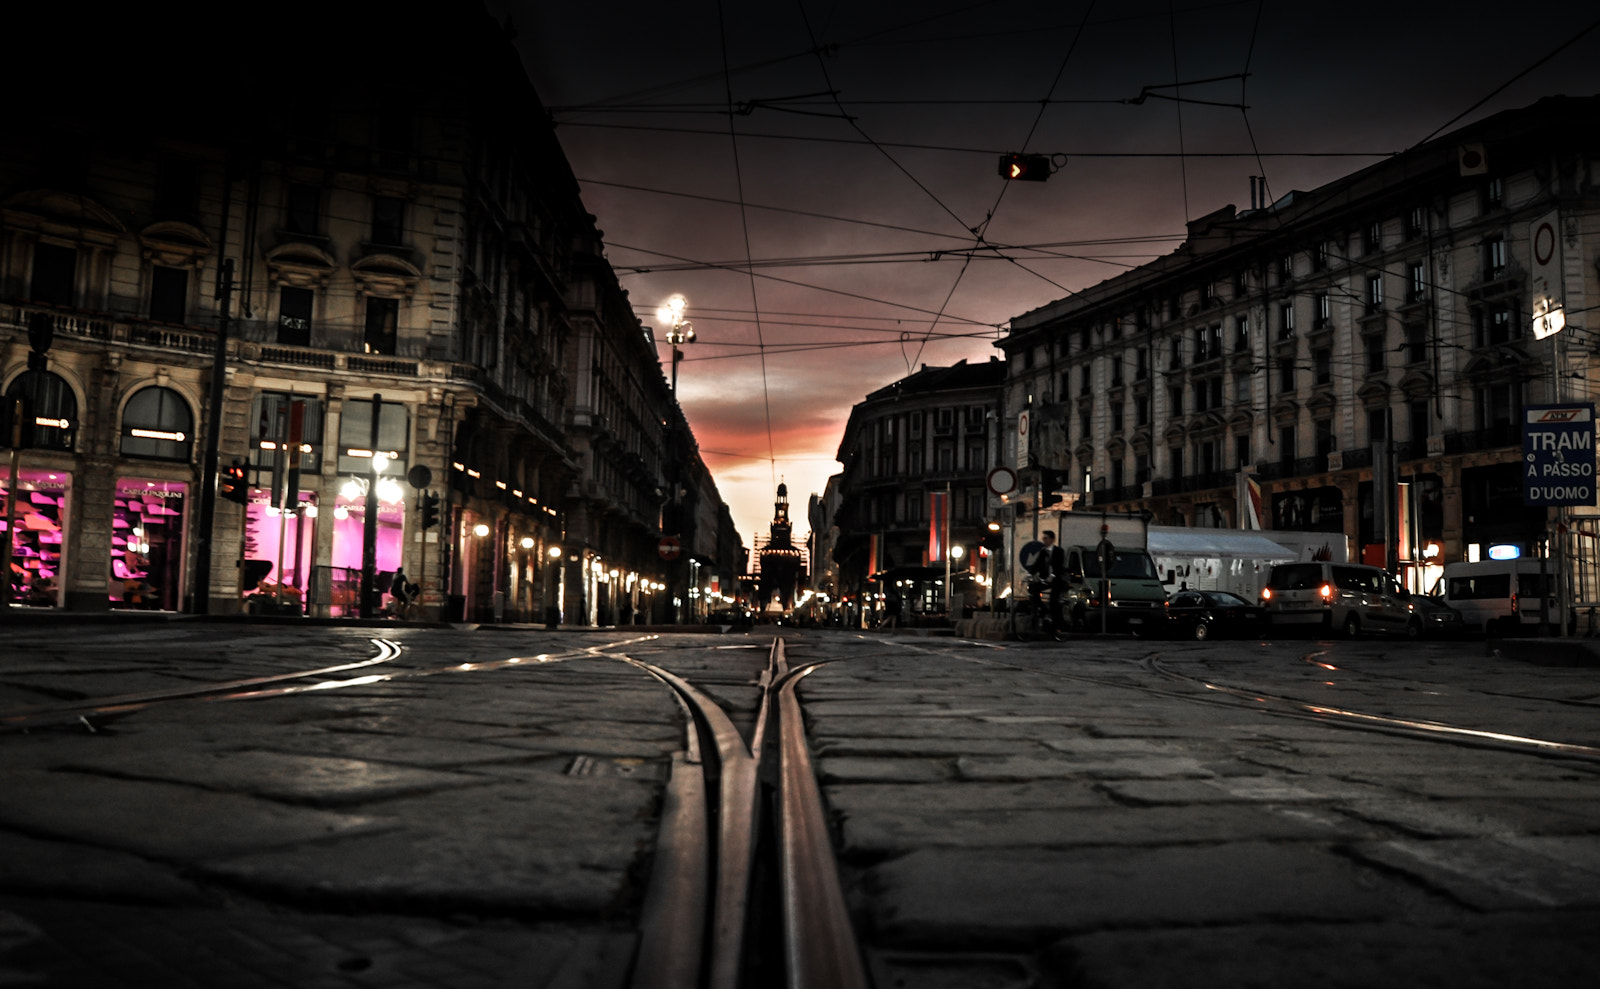 Photograph ..alone in an empty city by Manuela Bucci on 500px